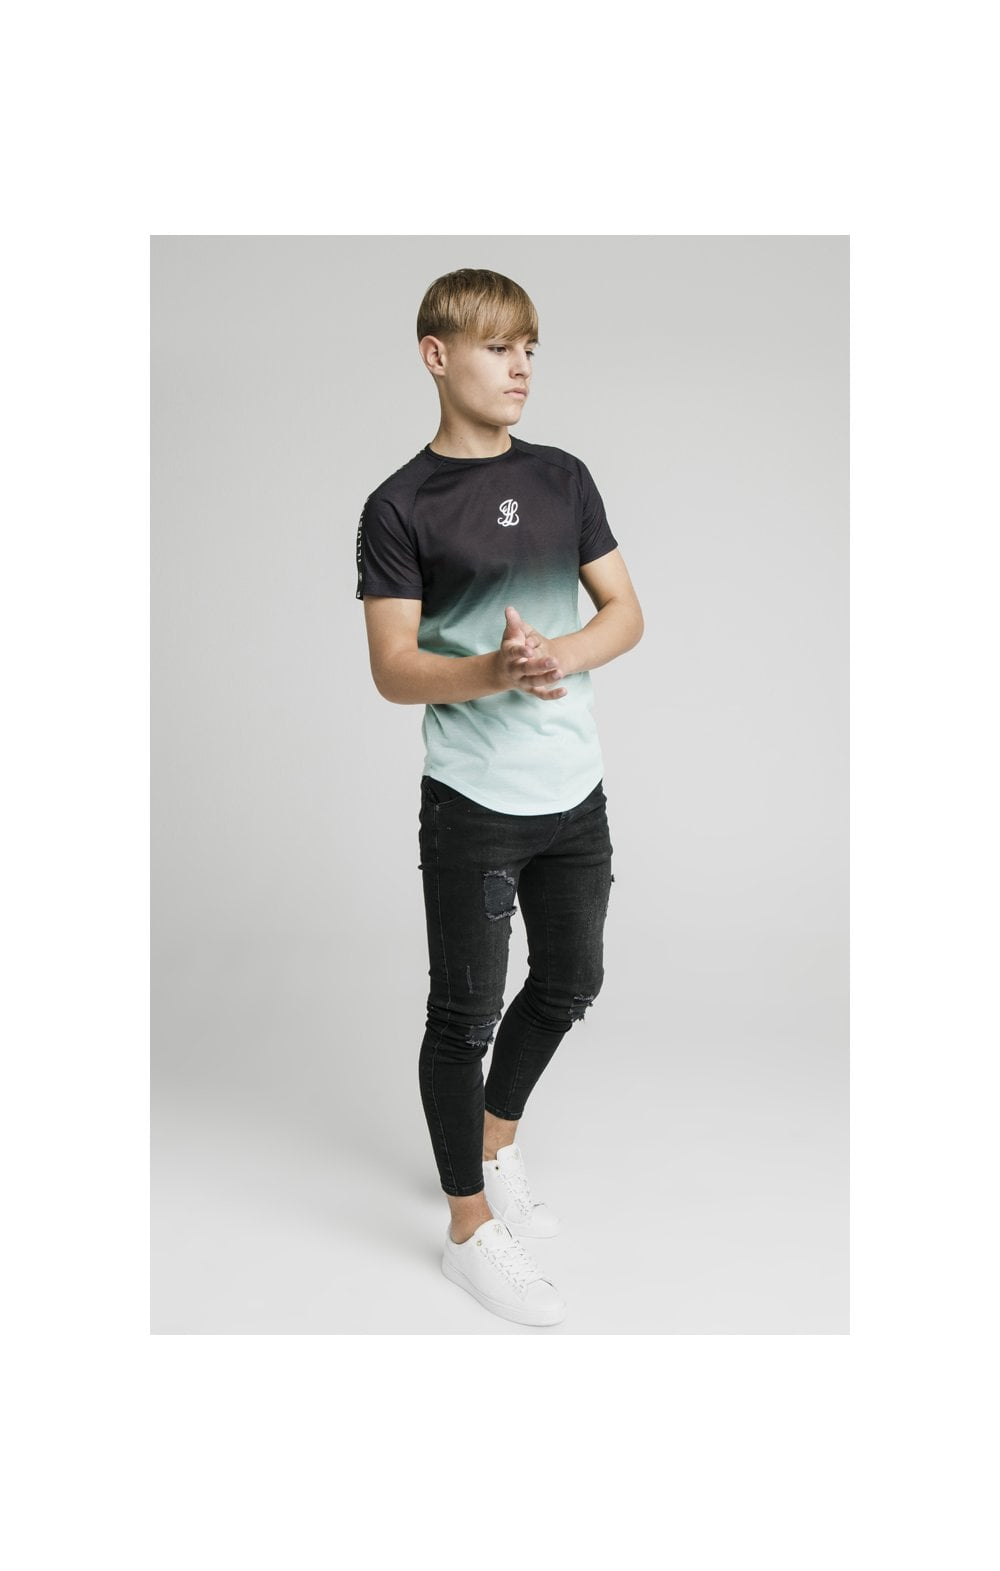 Illusive London Tape Fade Logo Tee - Black & Mint (3)